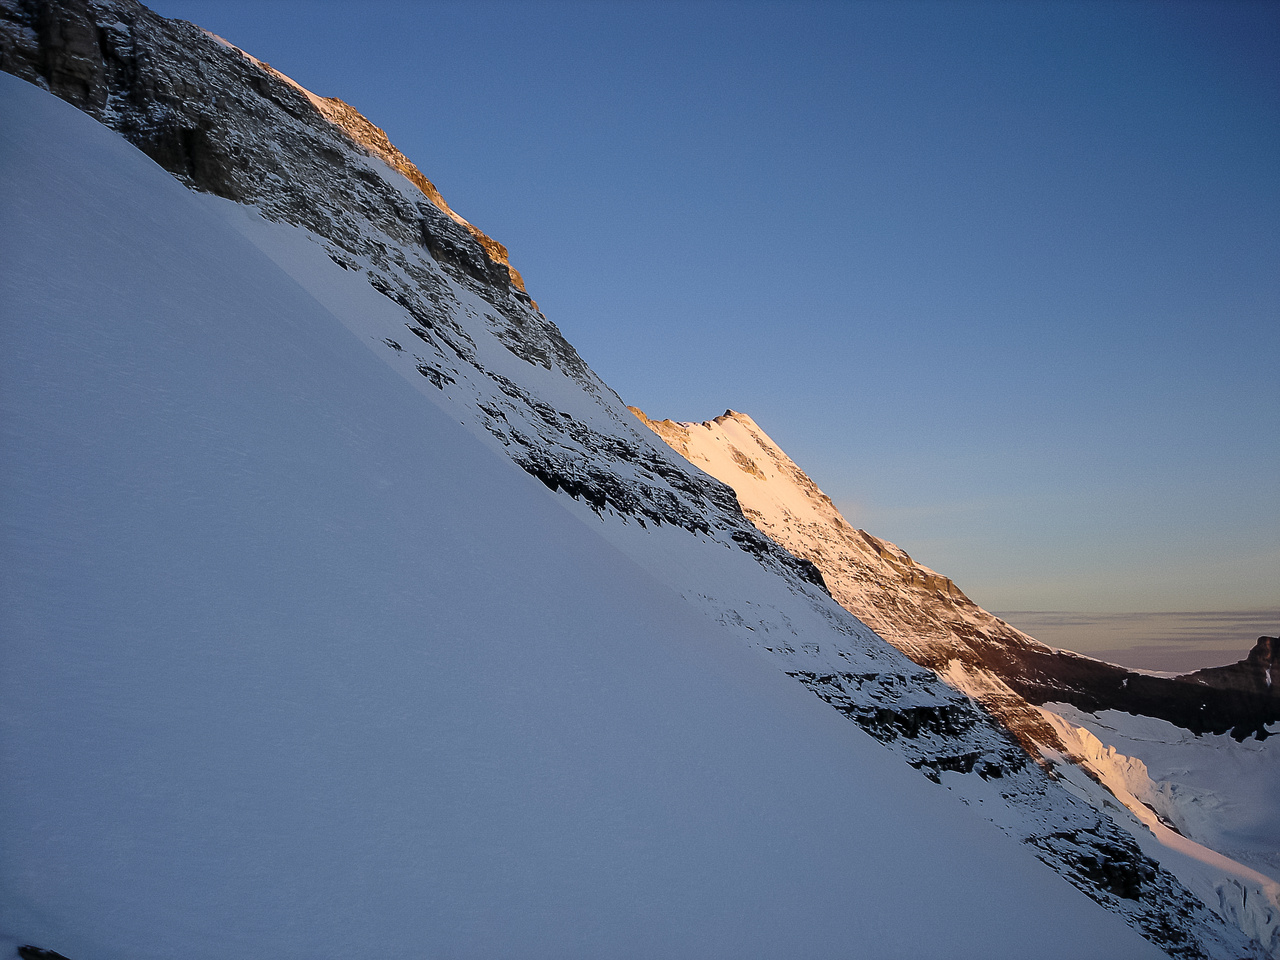 Early morning sun starts to light up the ridge. We are about 1.5 hours into it at this point.